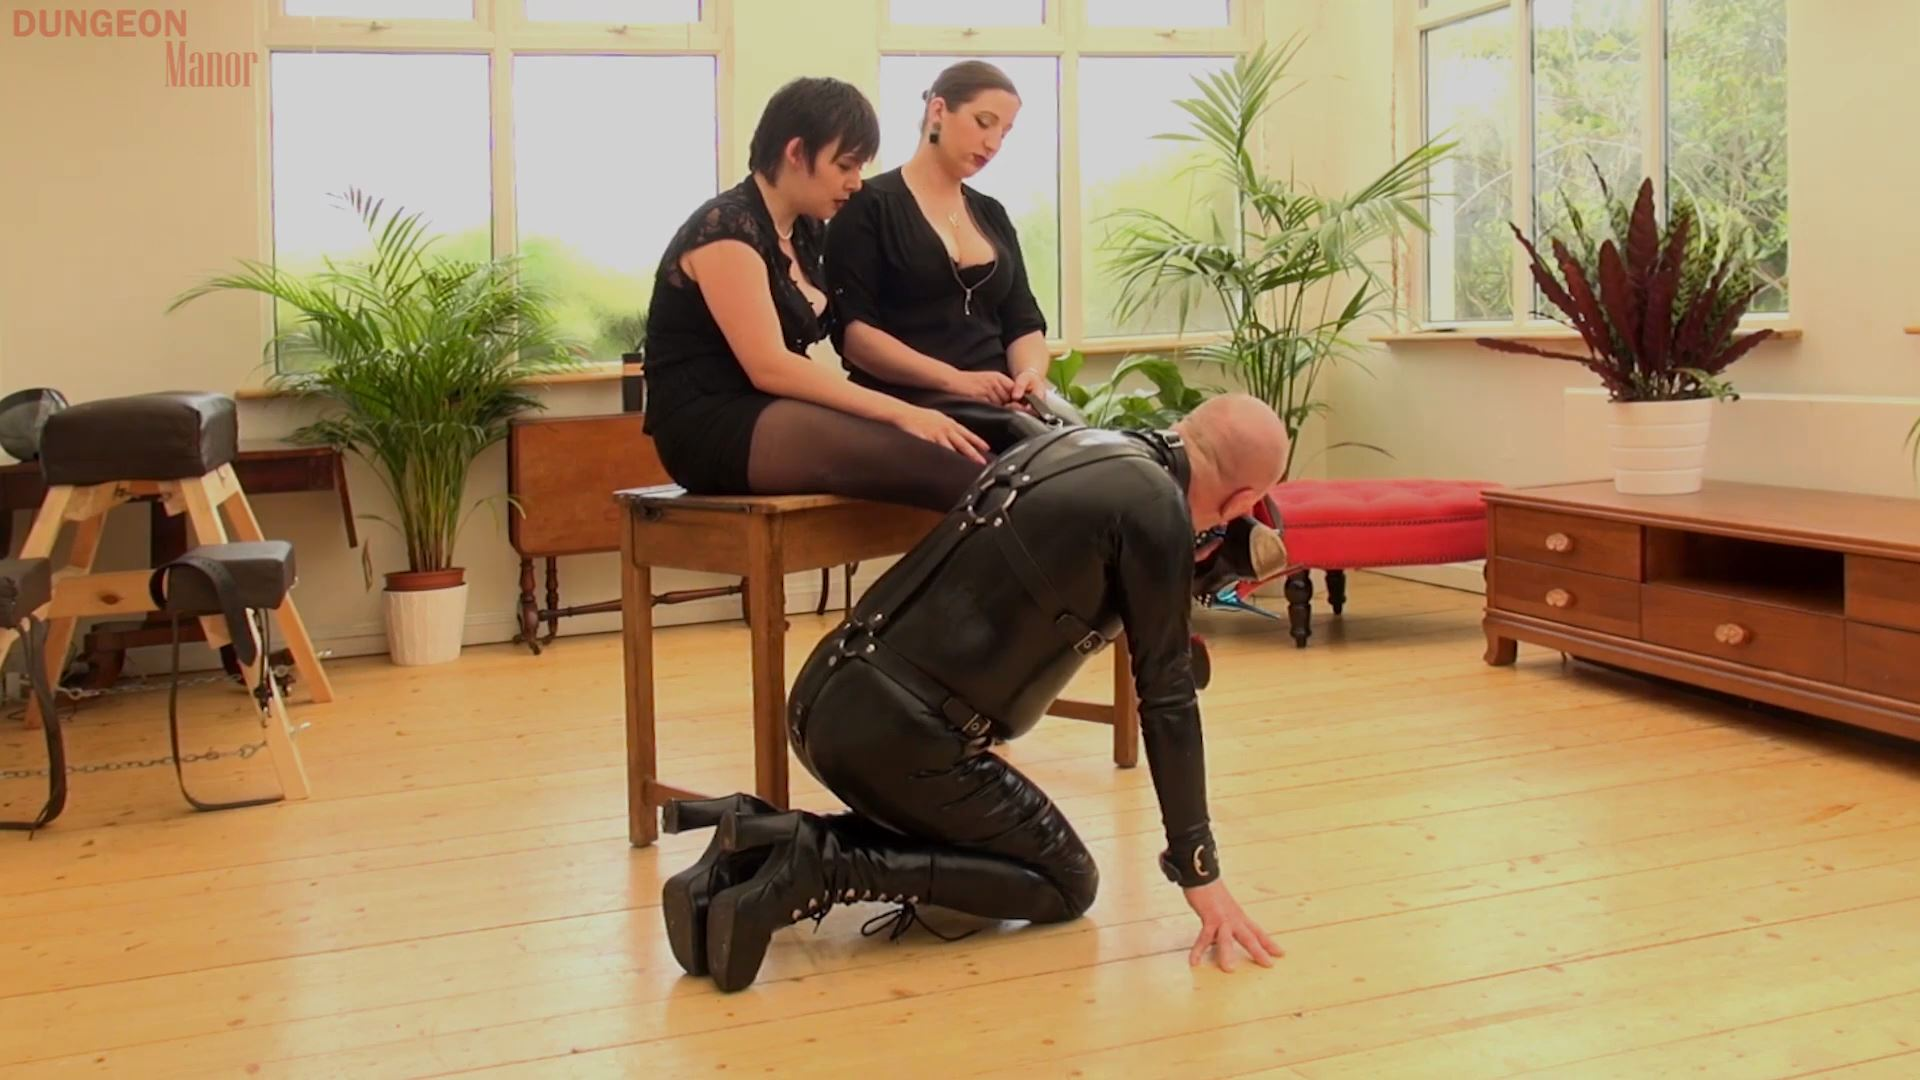 A dungeon Manor Production 390 - MISTRESS EVILYNE - FULL HD/1080p/MP4